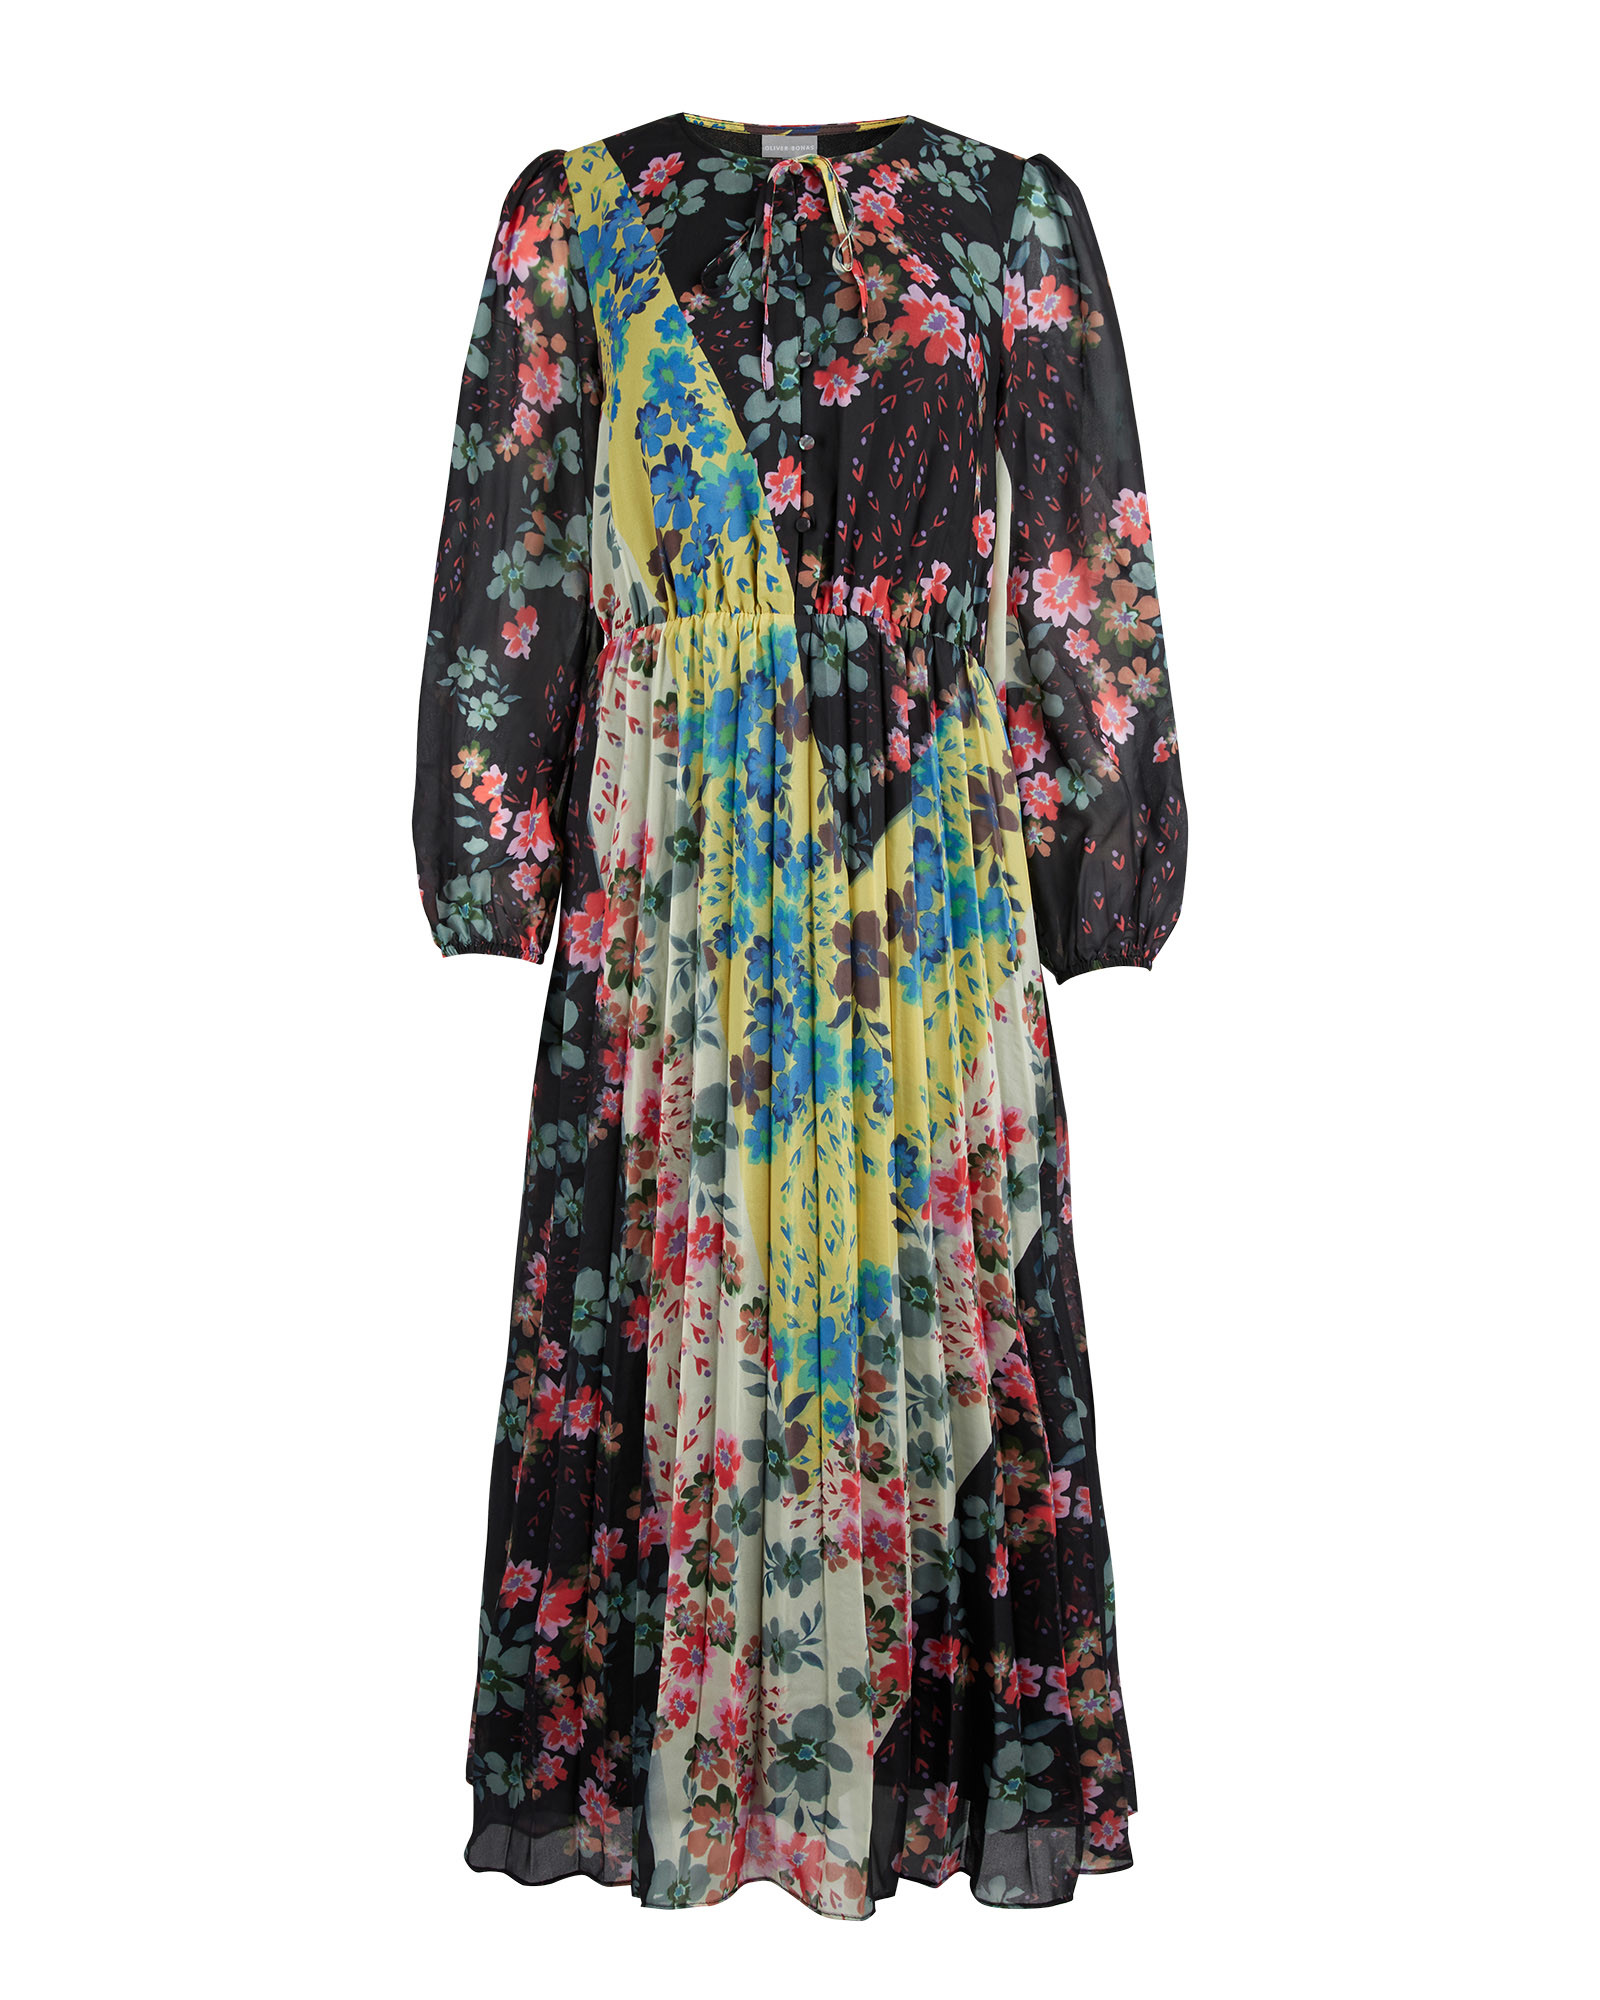 Chevron Patched Floral Pleated Midi Dress